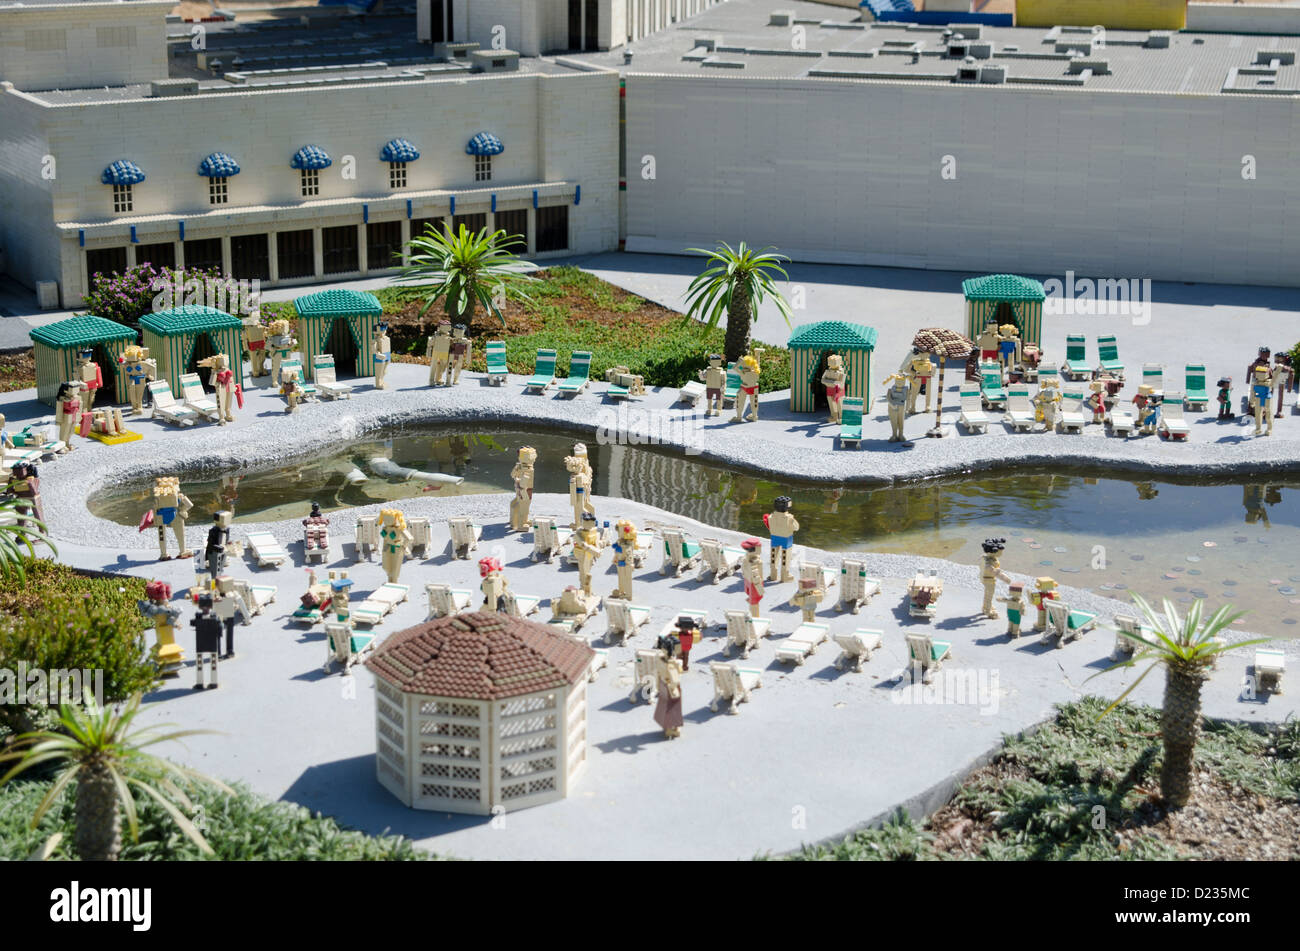 A scene from Miniland Las Vegas, Legoland California Resort amusement theme park, San Diego, California, USA Stock Photo